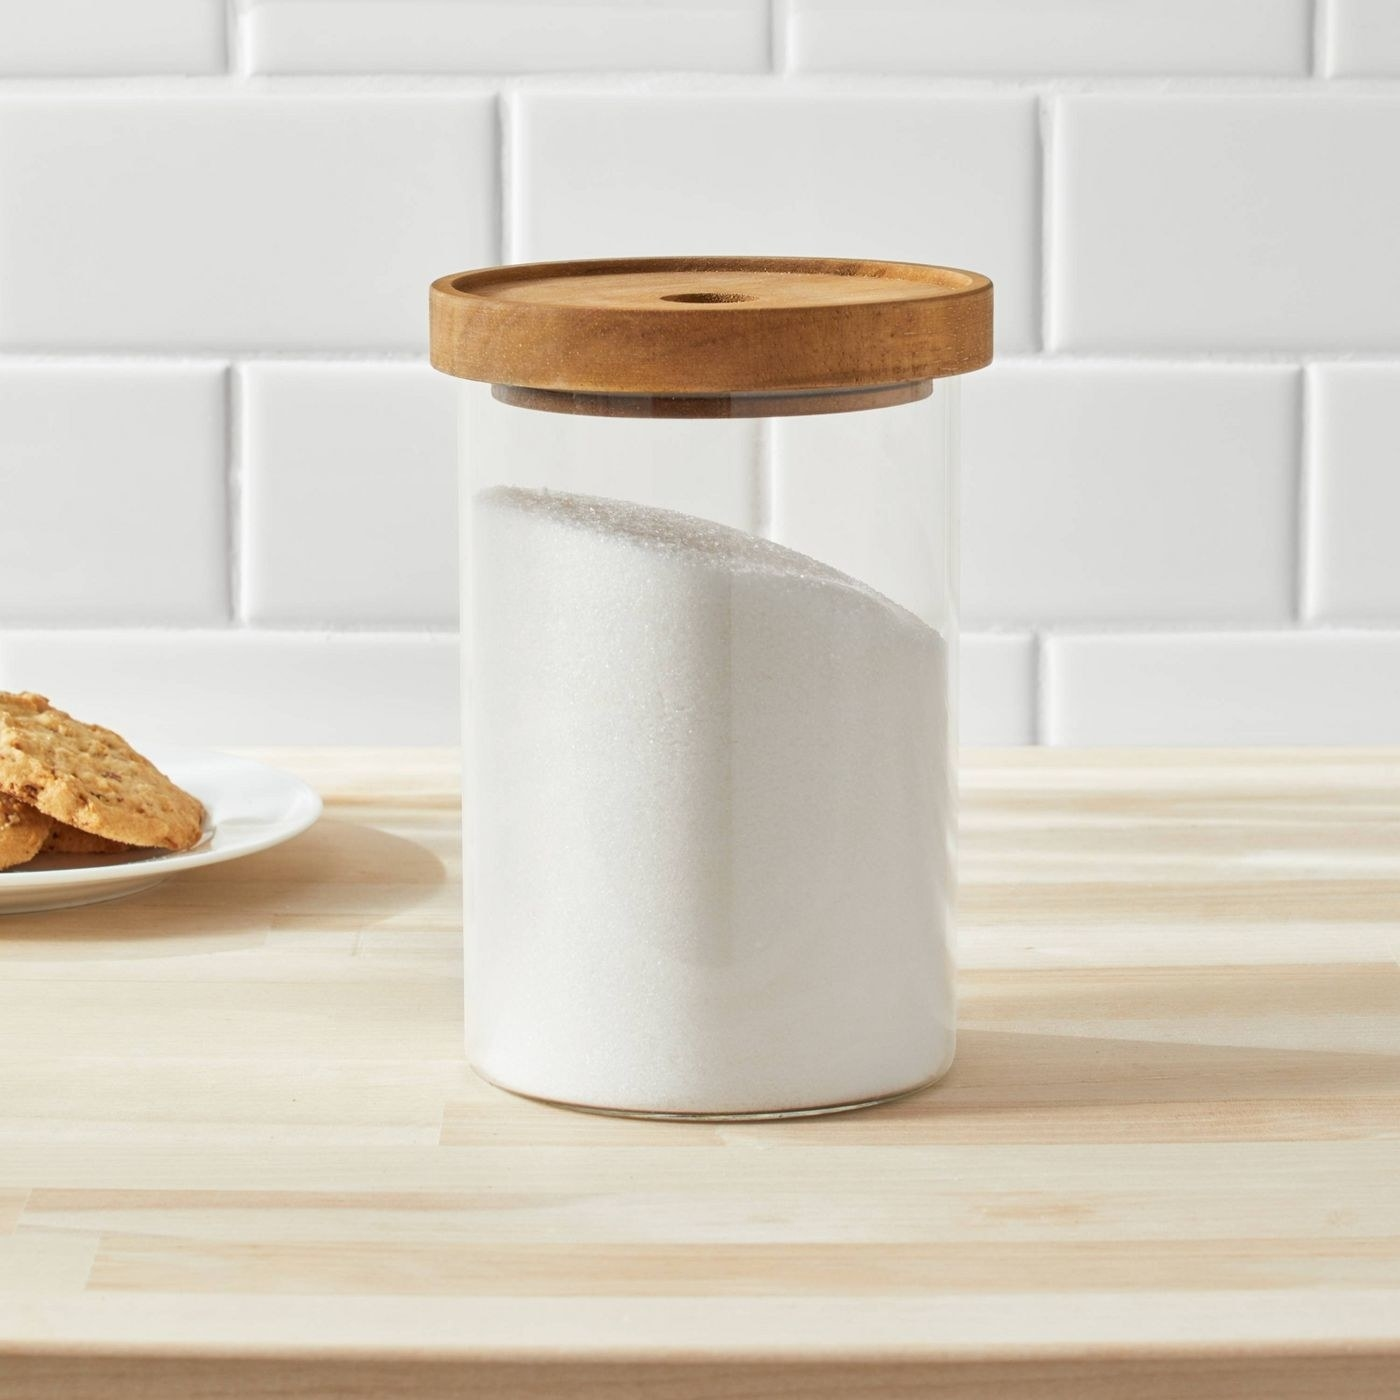 the canister on a counter